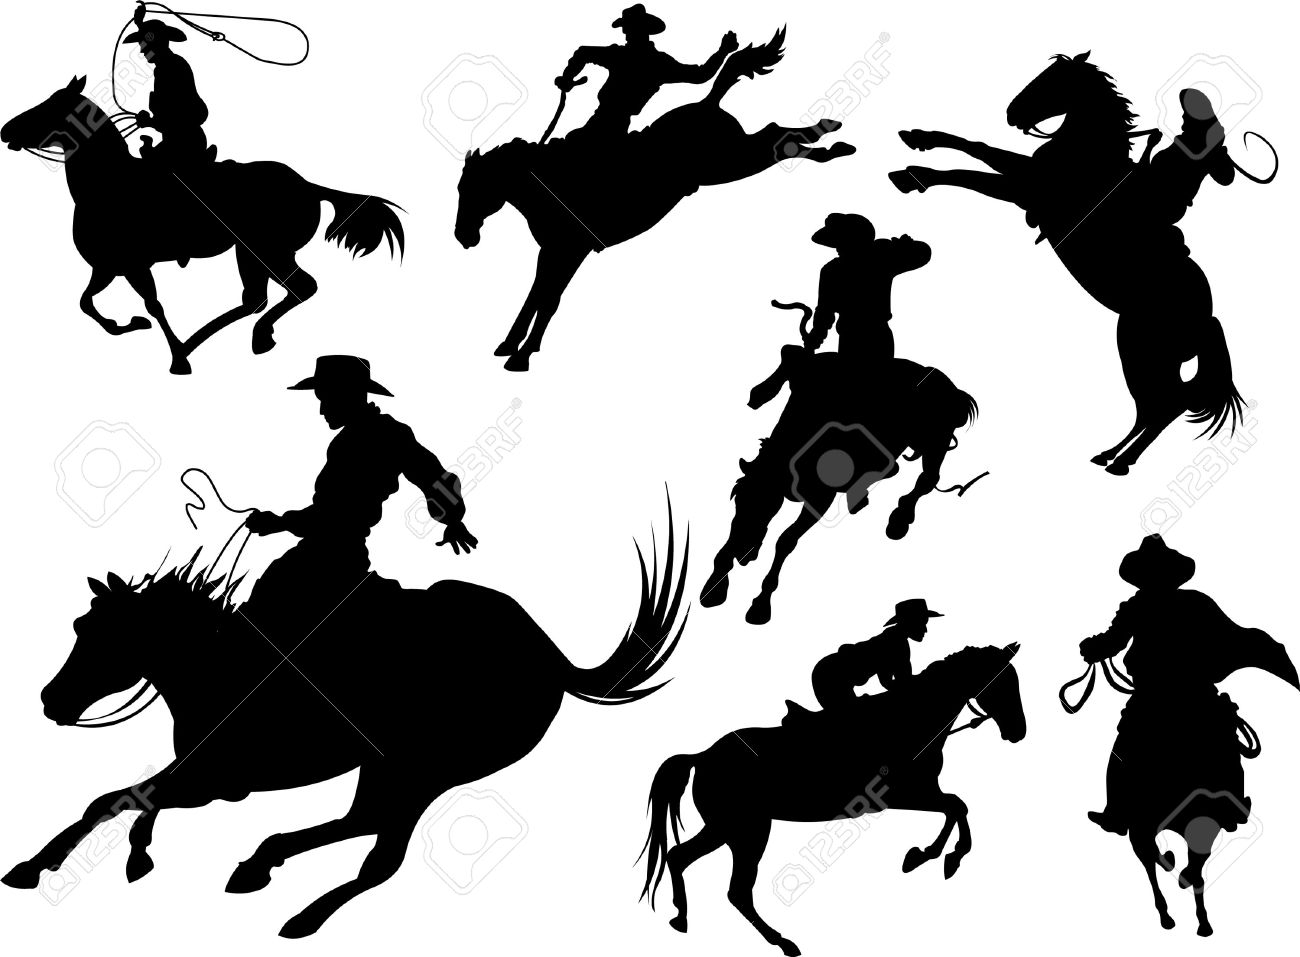 Horse Silhouette Cowboys on Horses Silhouettes